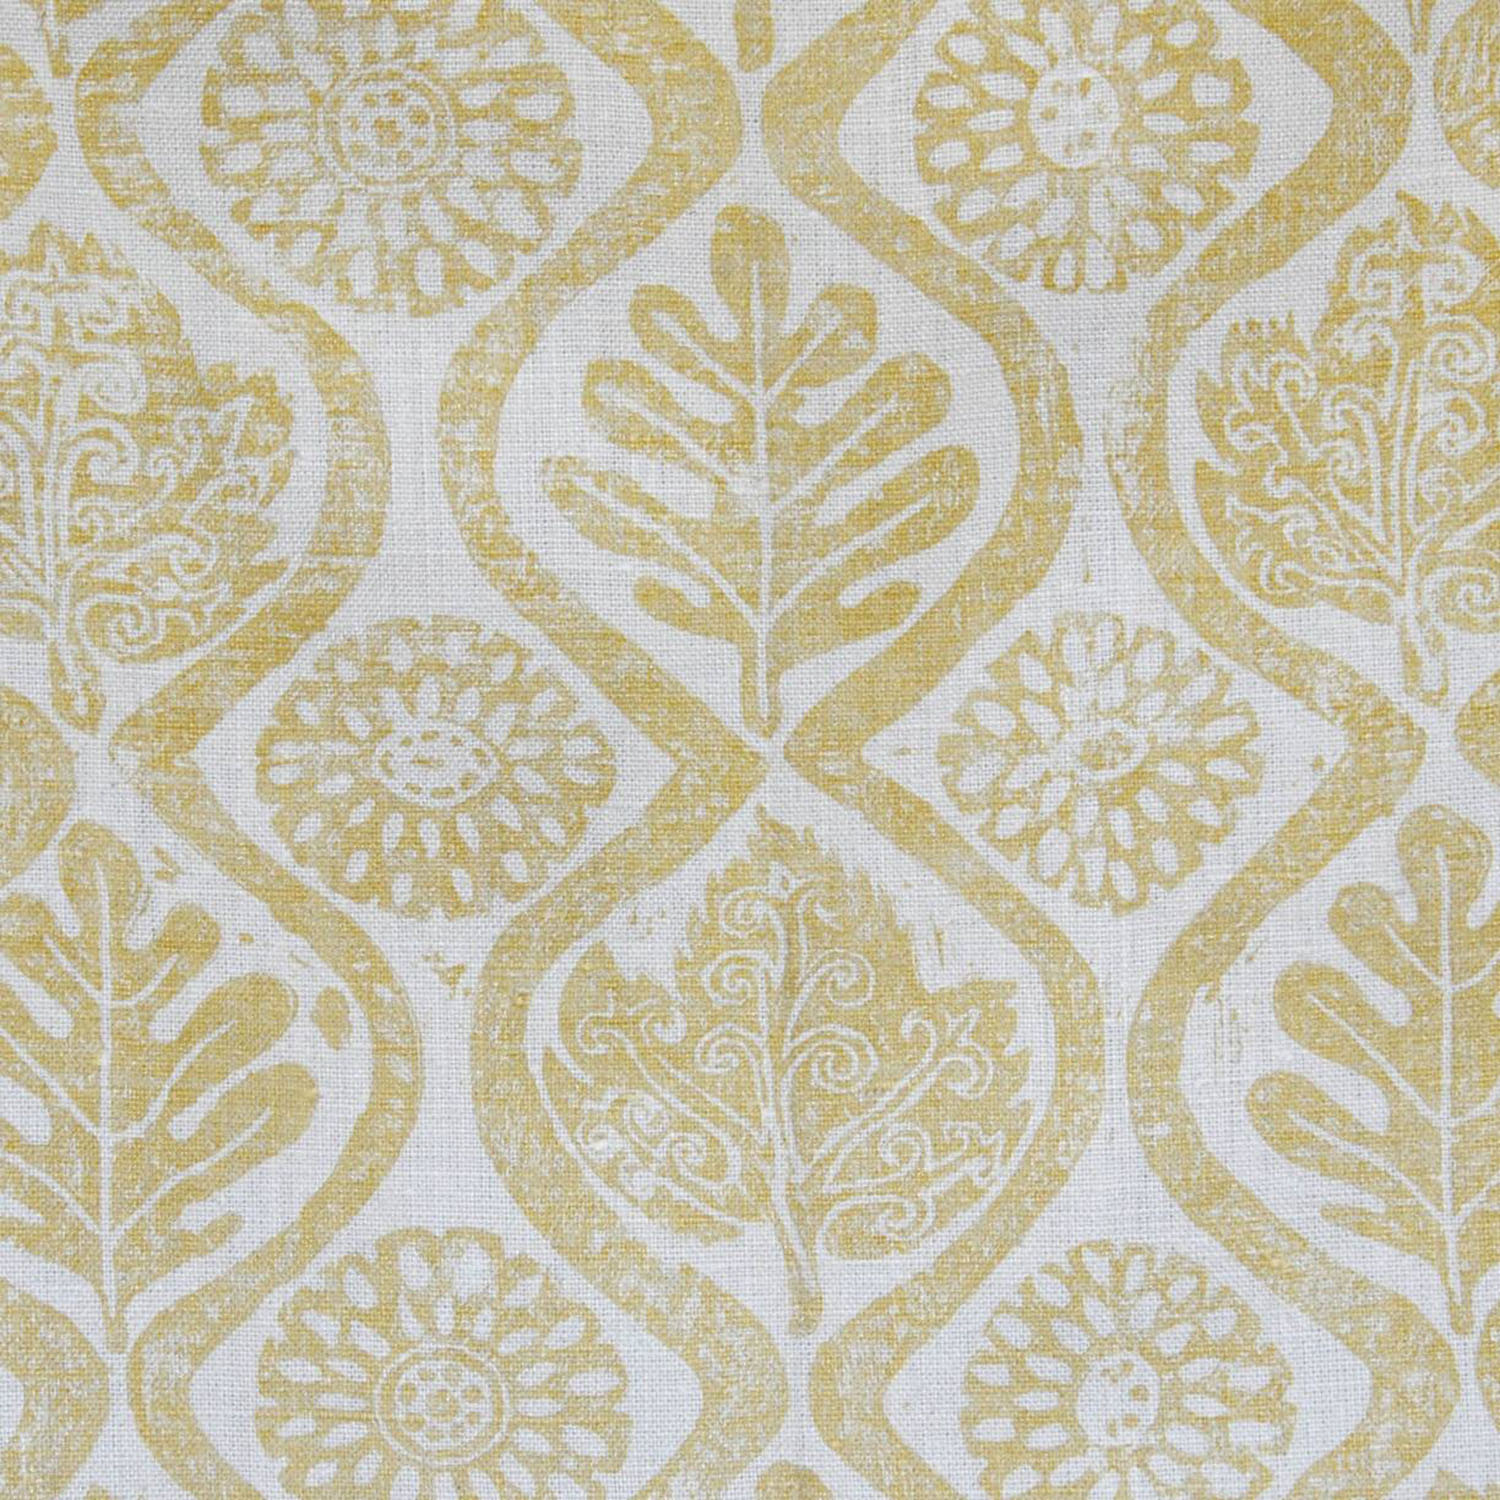 <p><strong>OAKLEAVES</strong>natural yellow 6200-07<a href=/the-peggy-angus-collection/oakleaves-natural-yellow-6200-07>More →</a></p>